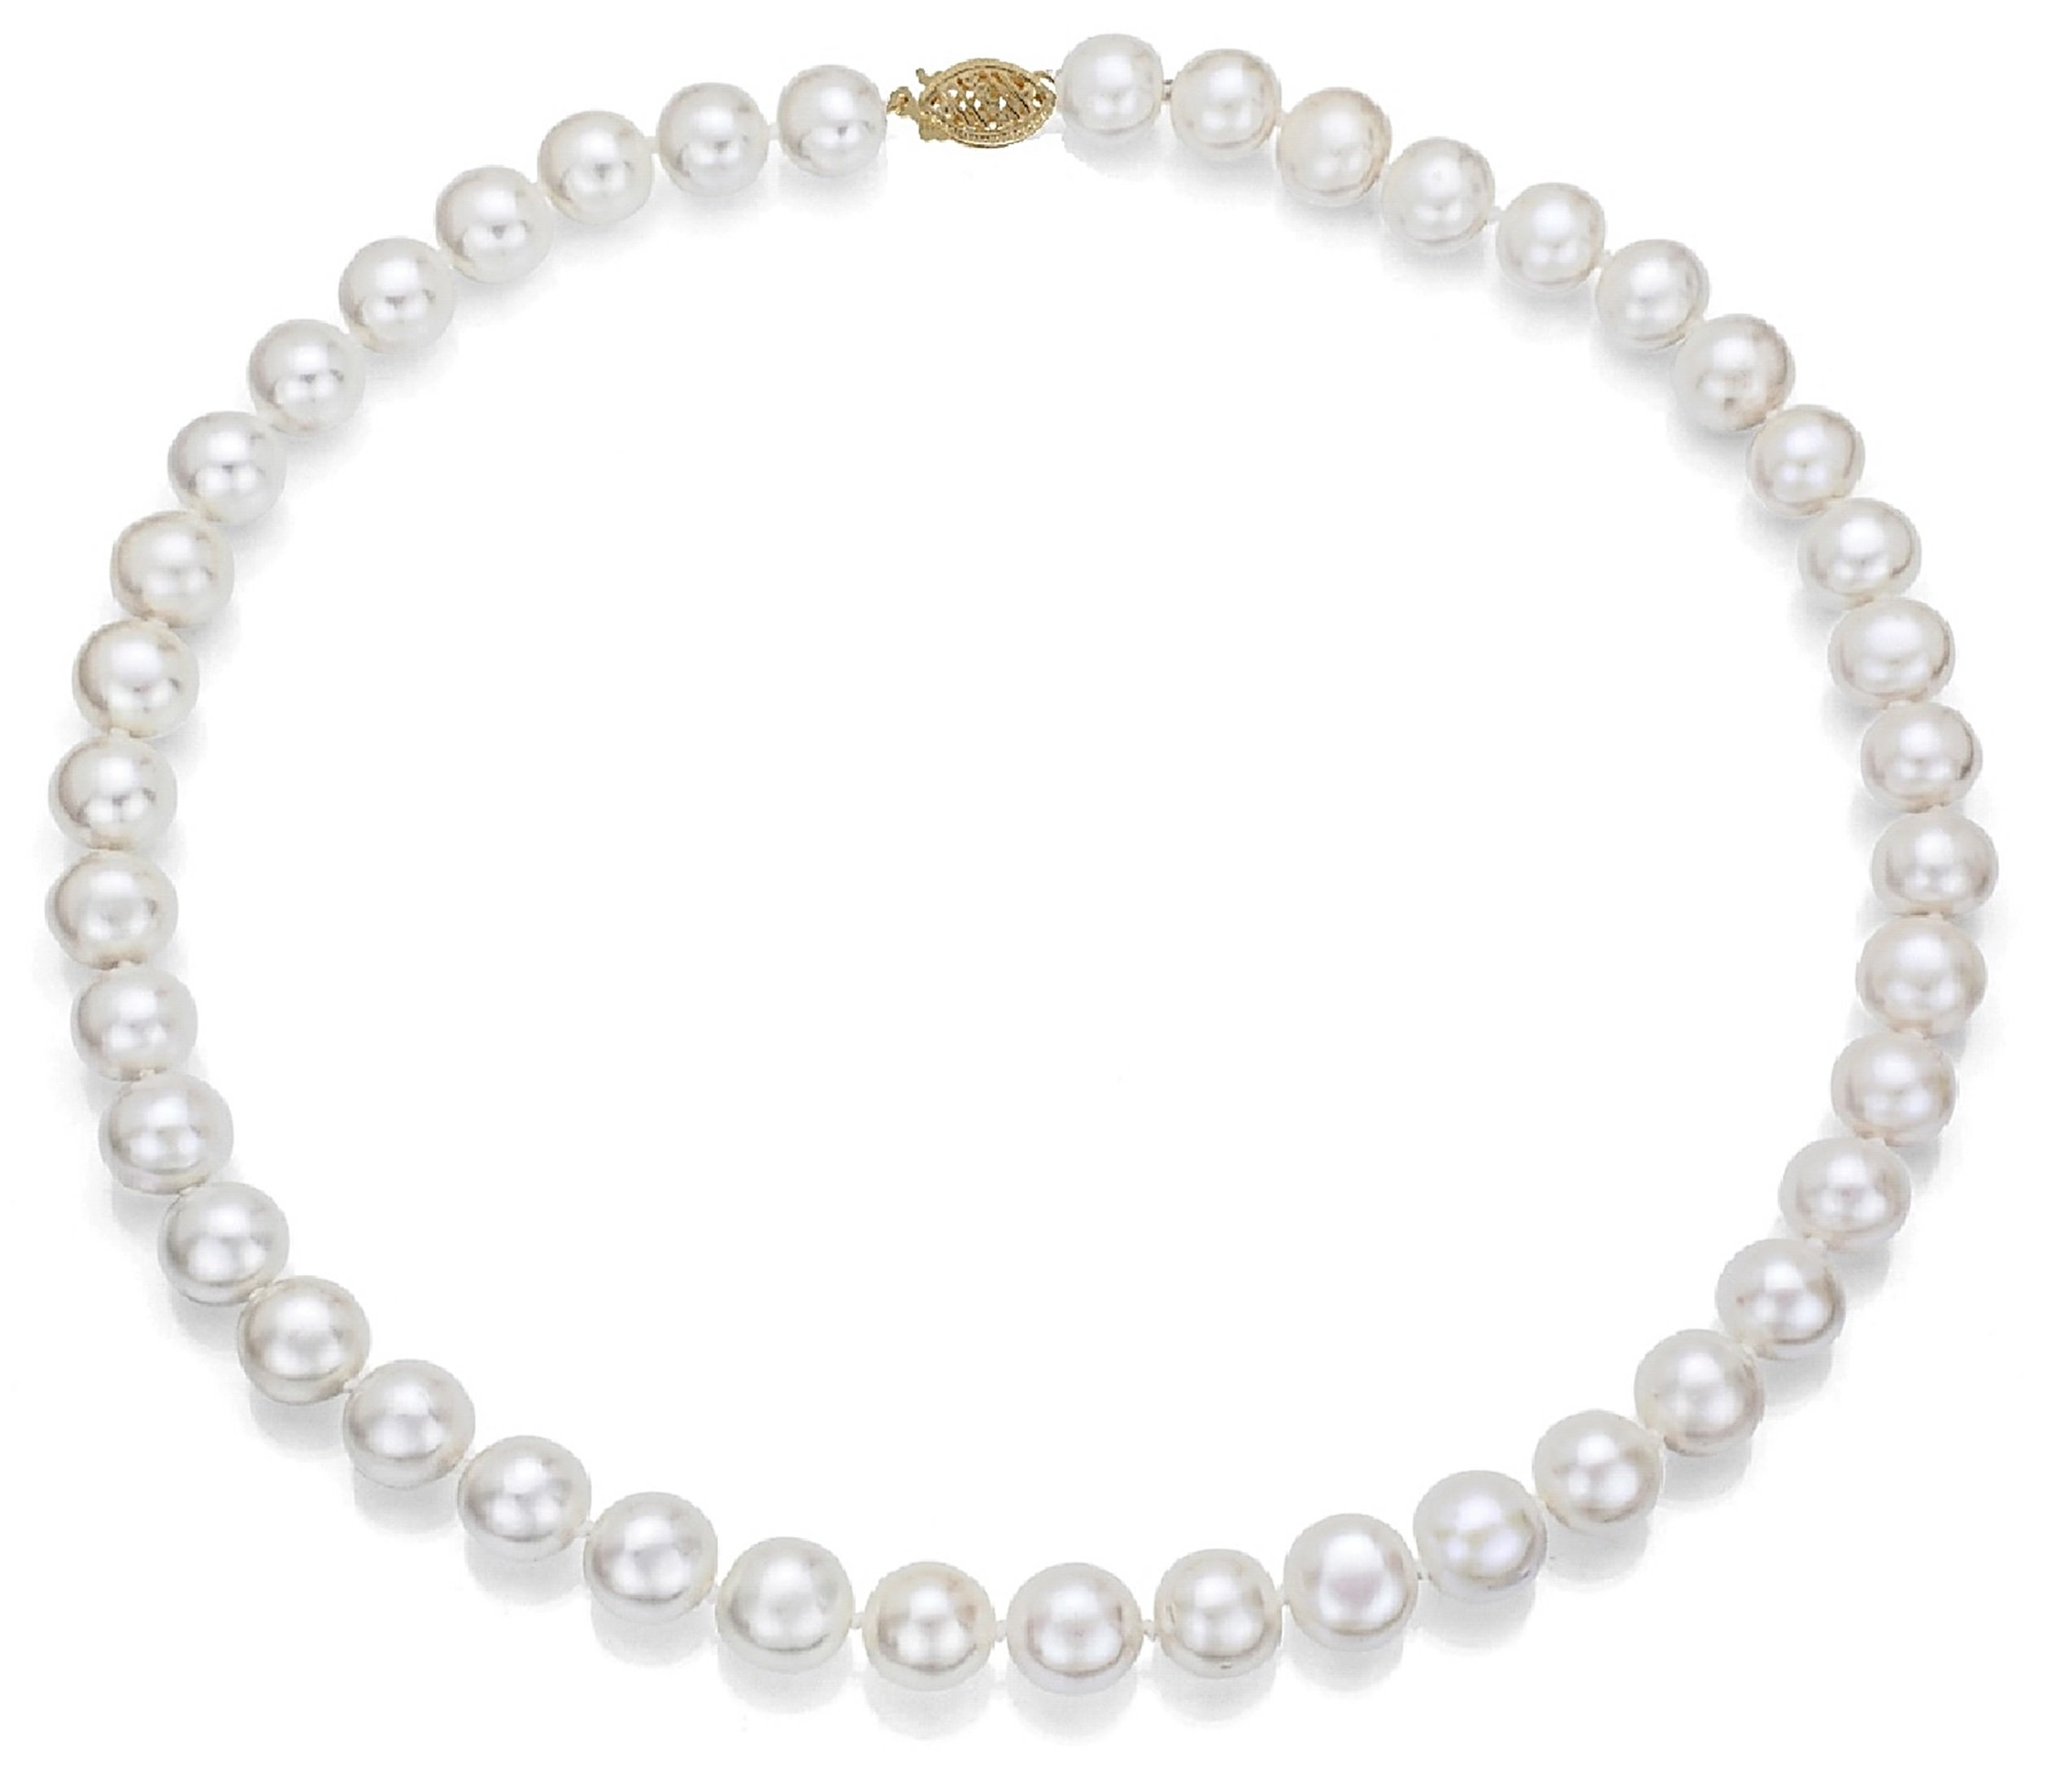 14k Gold, AAA Quality High Luster White Freshwater Cultured Pearl Bridal Necklace (8-9mm)